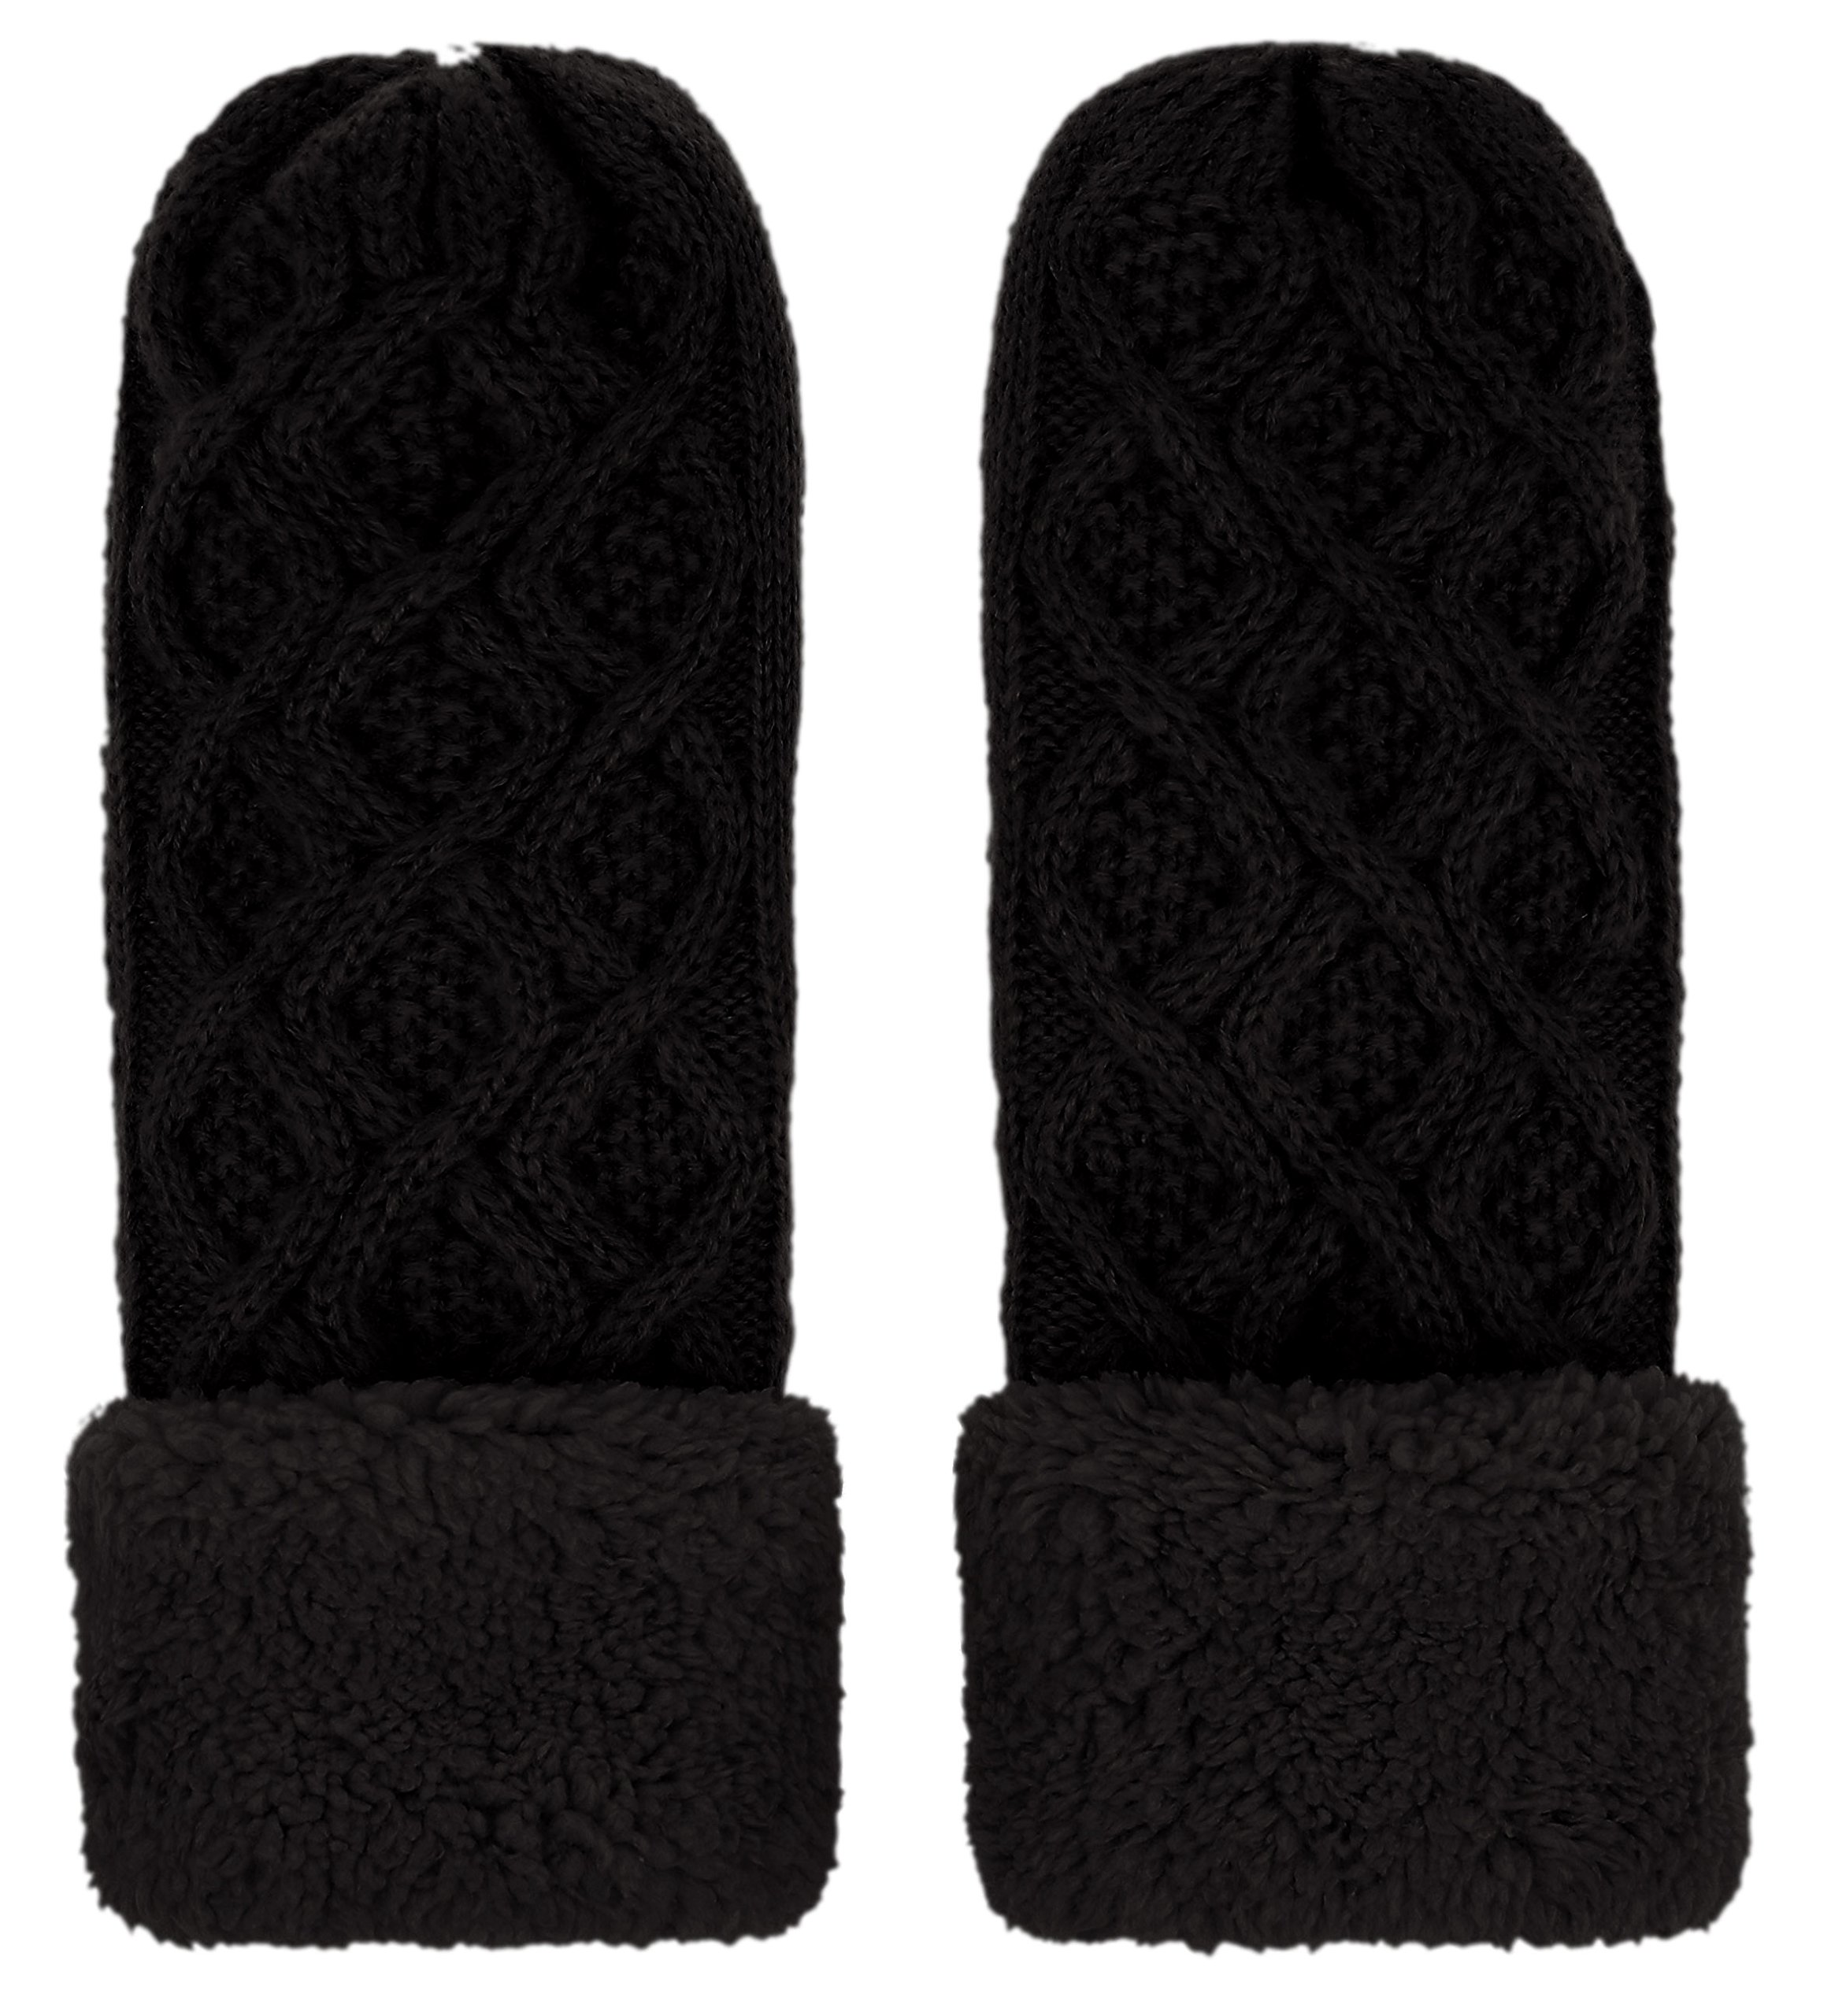 IL Caldo Womens Knitted Mittens Winter Twist Thick Plush Edge Warm Outdoor Gloves,Black